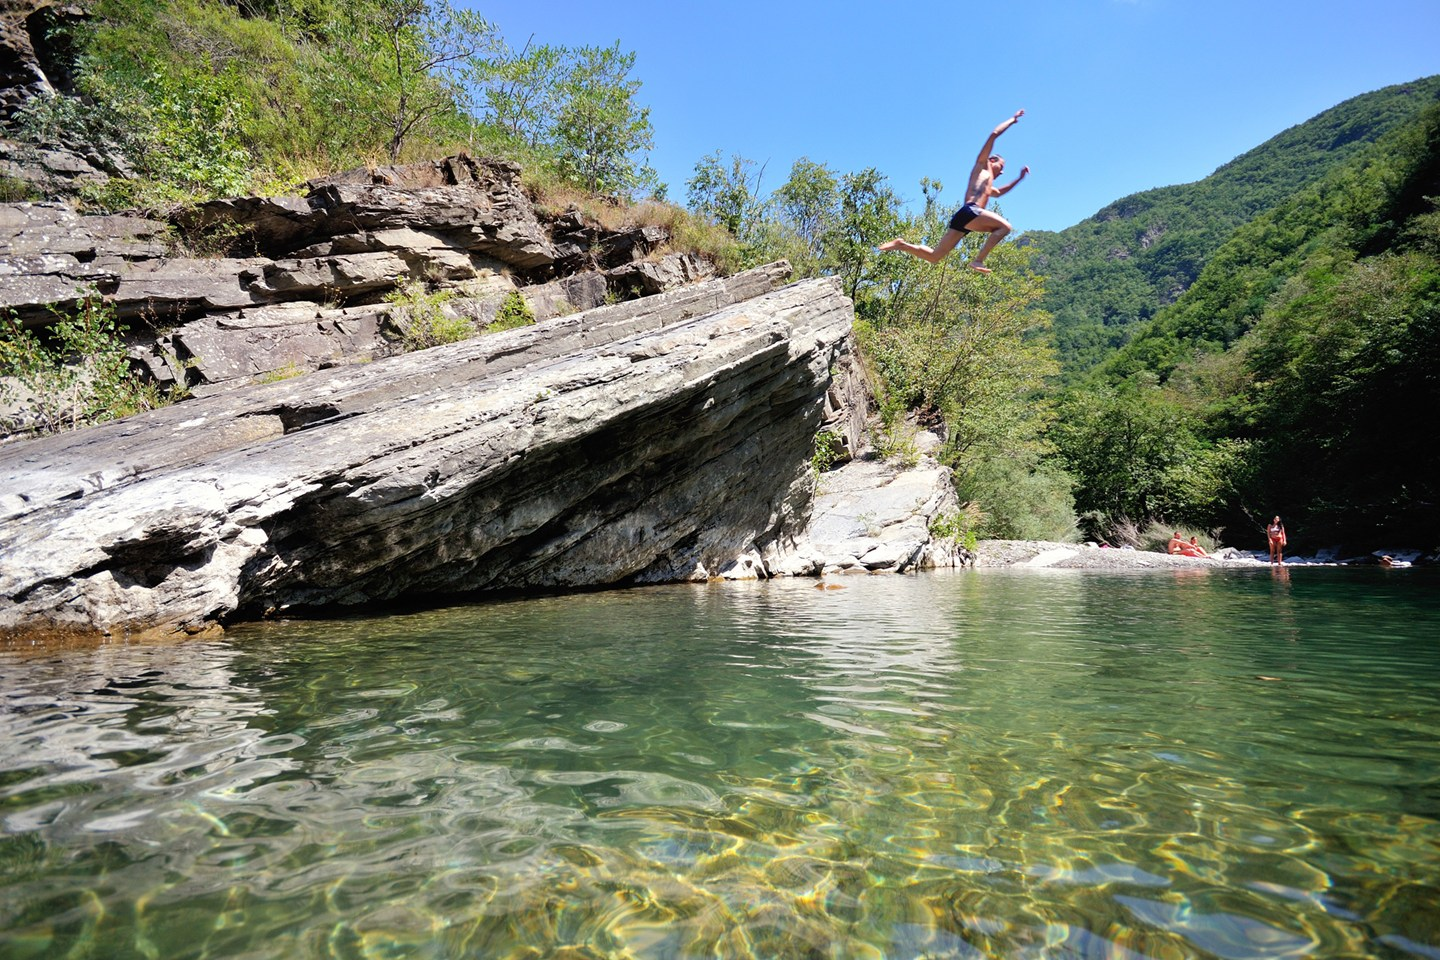 95b-wild-swimming-italy-conde-nast-traveller-10sept14-pr_1440x960